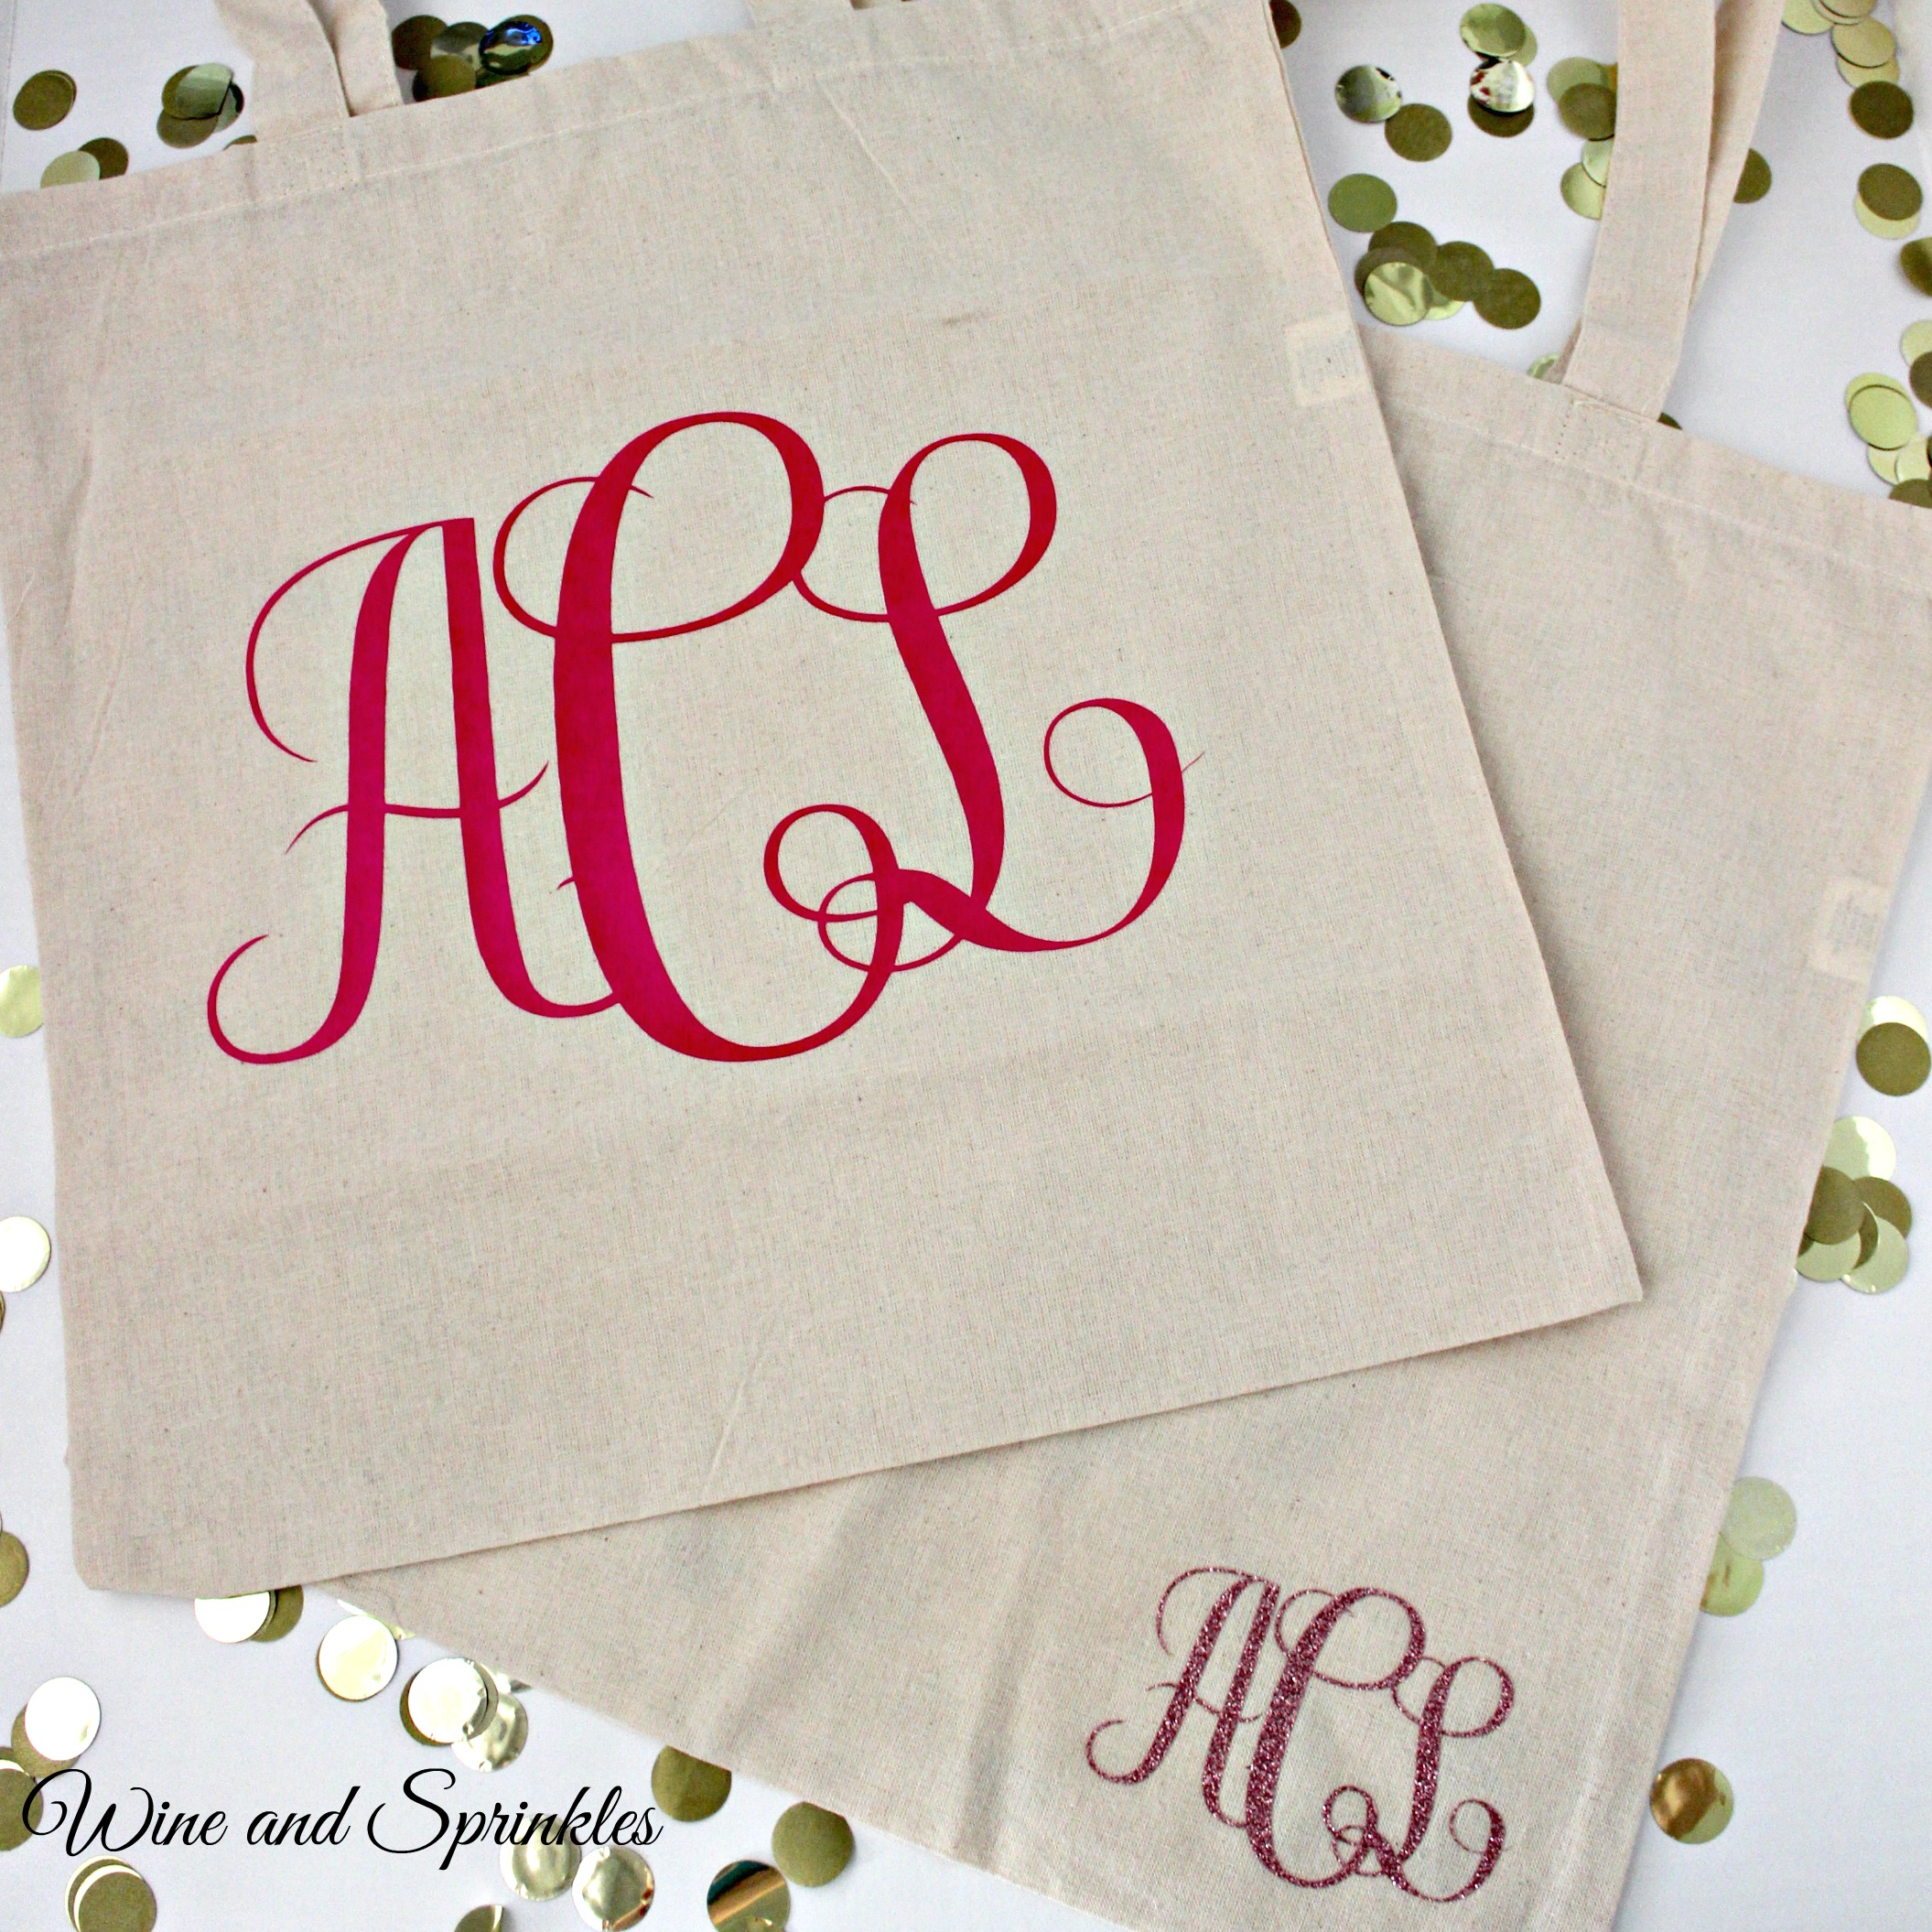 DIY Monogram Bridal Canvas Tote Bags #diywedding #cricutprojects #monogram